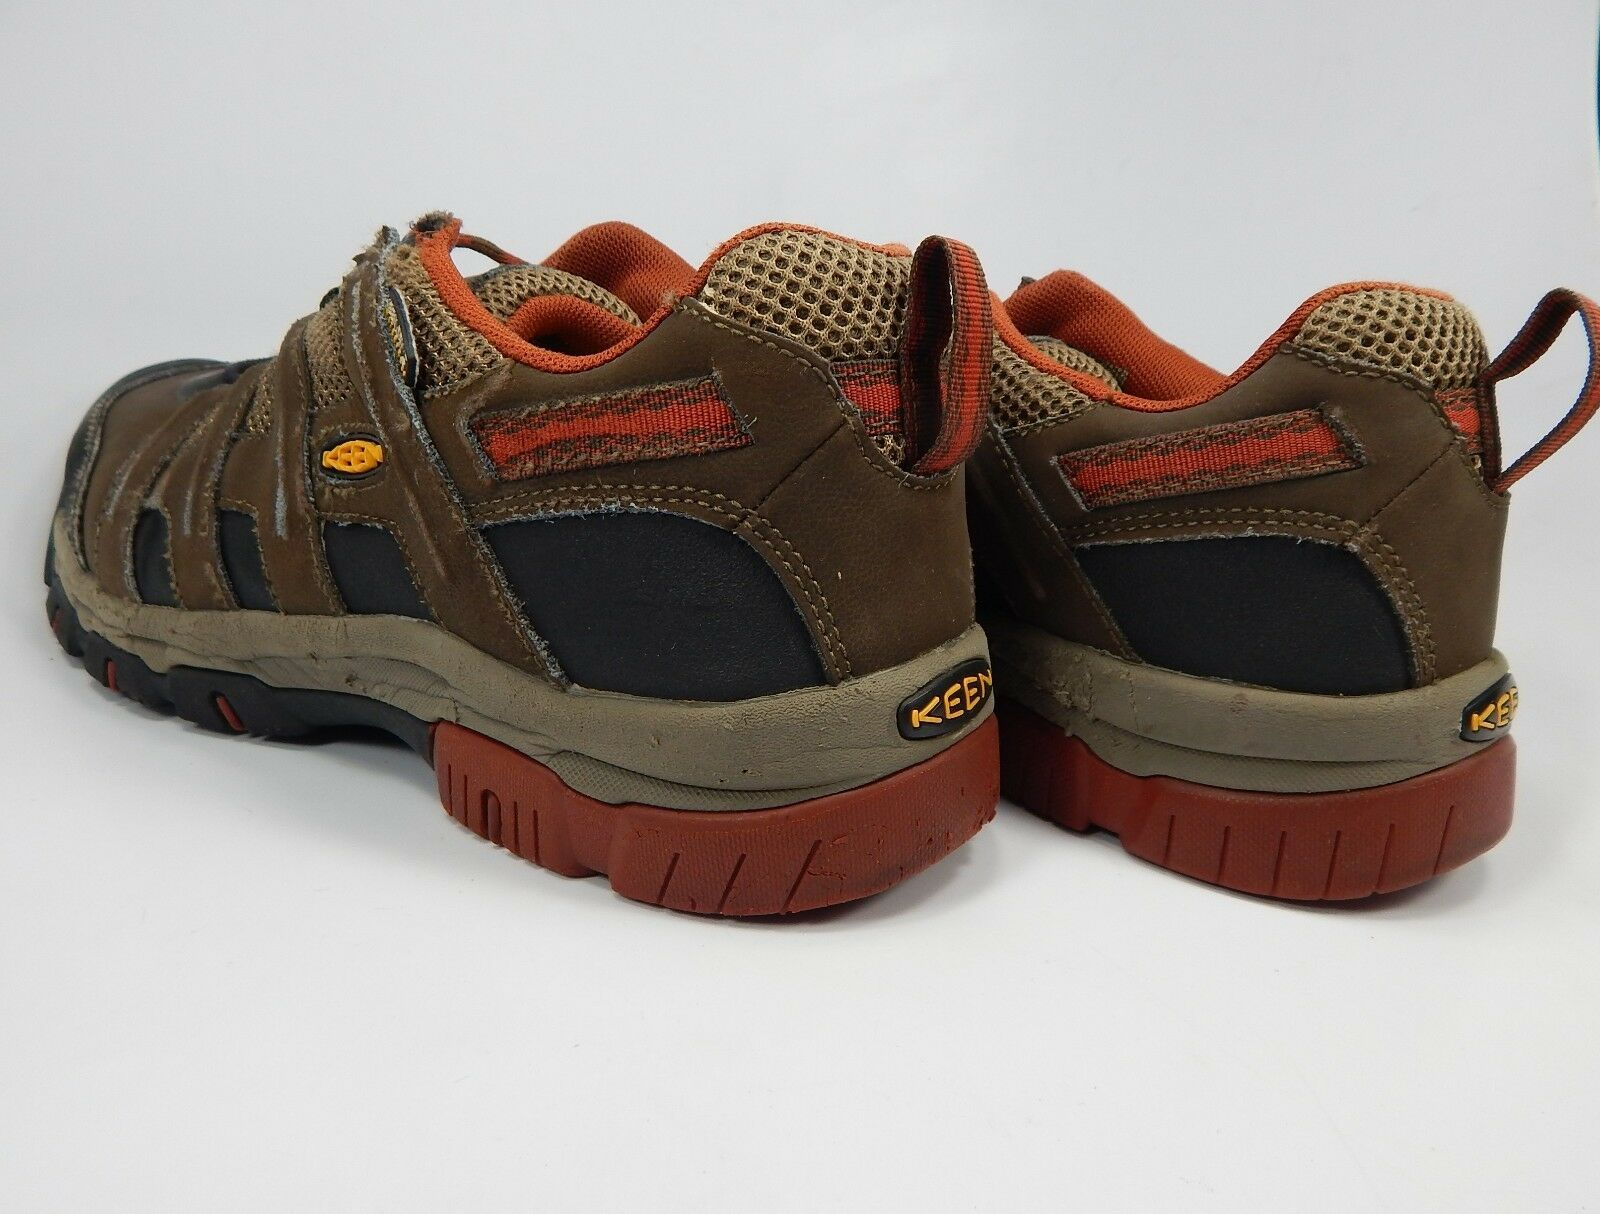 Keen Omaha Low Sz 11 M (D) EU 44.5 Steel Toe WP Slip Resistant Men's Work Shoes